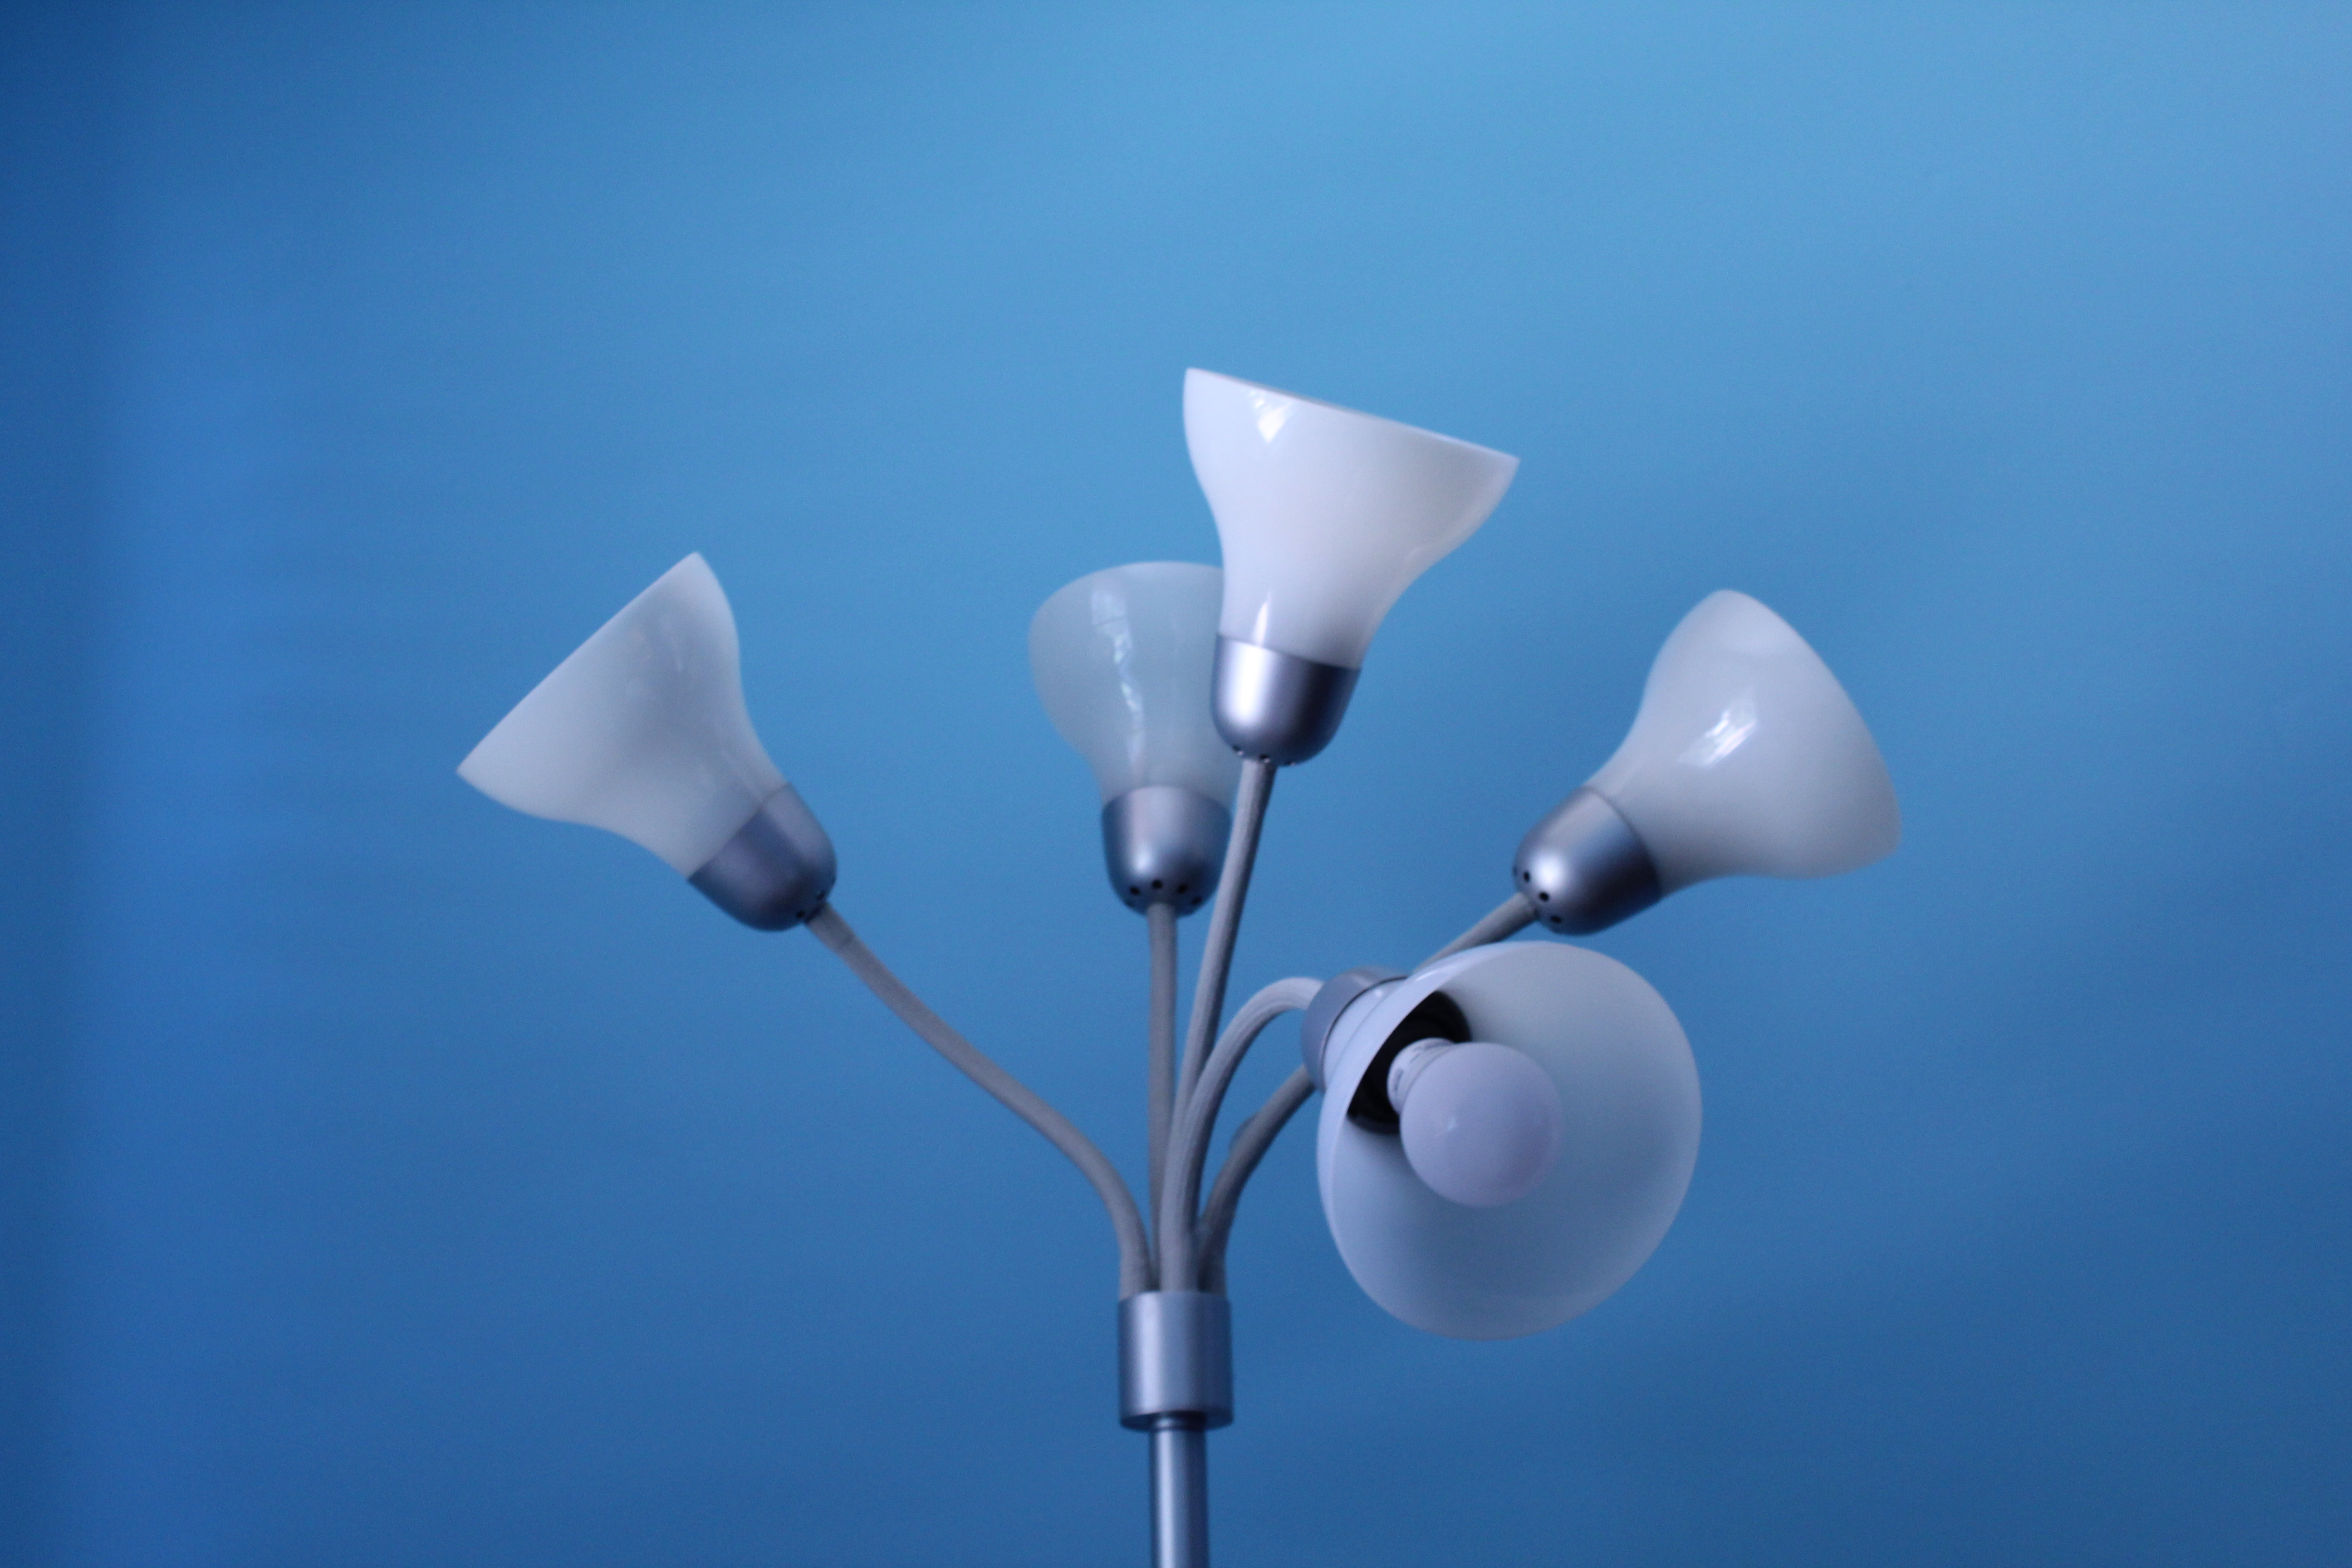 lamp with five lights in front of blue background